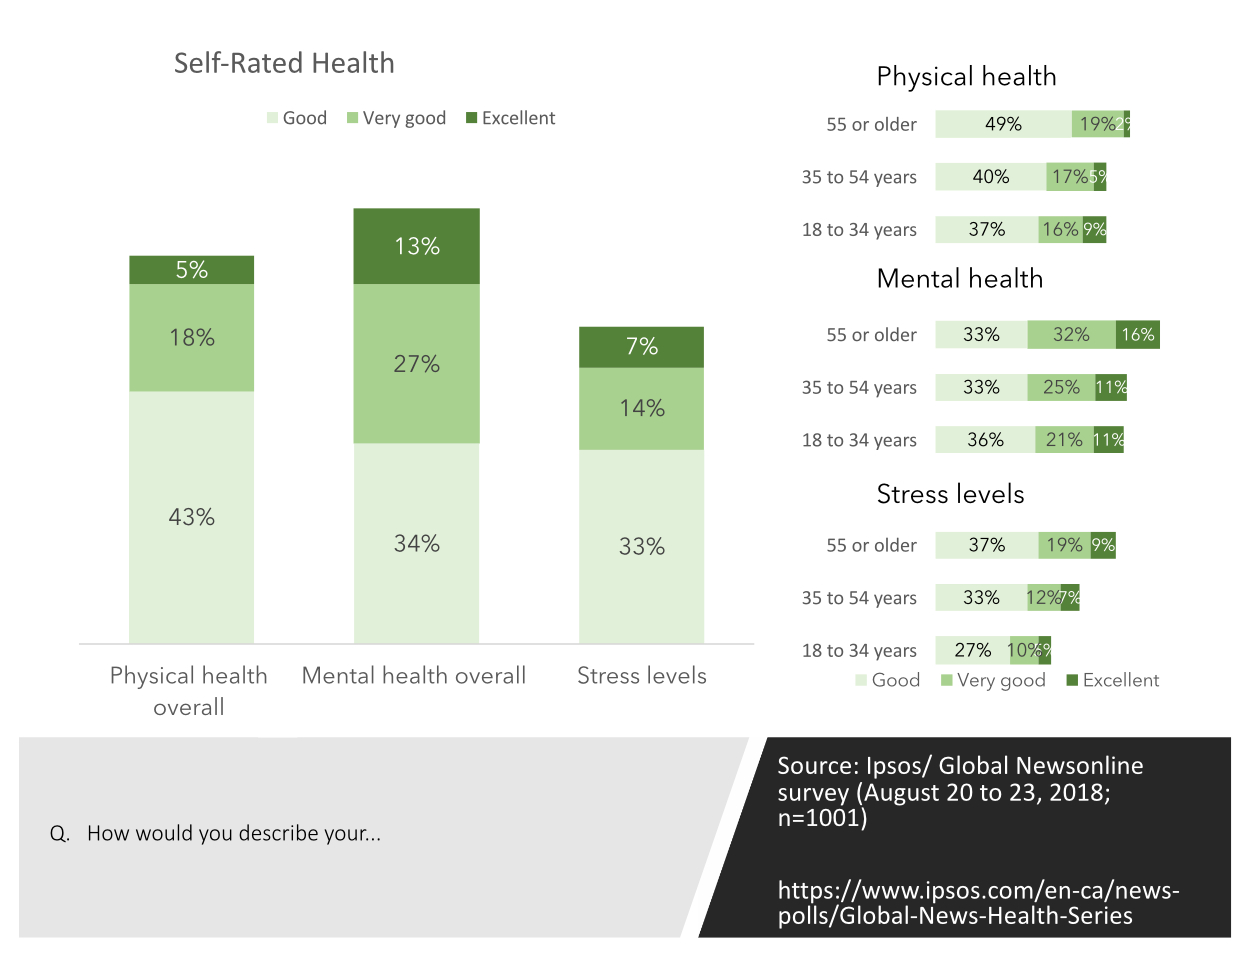 Ipsos Global News survey about physical and mental health